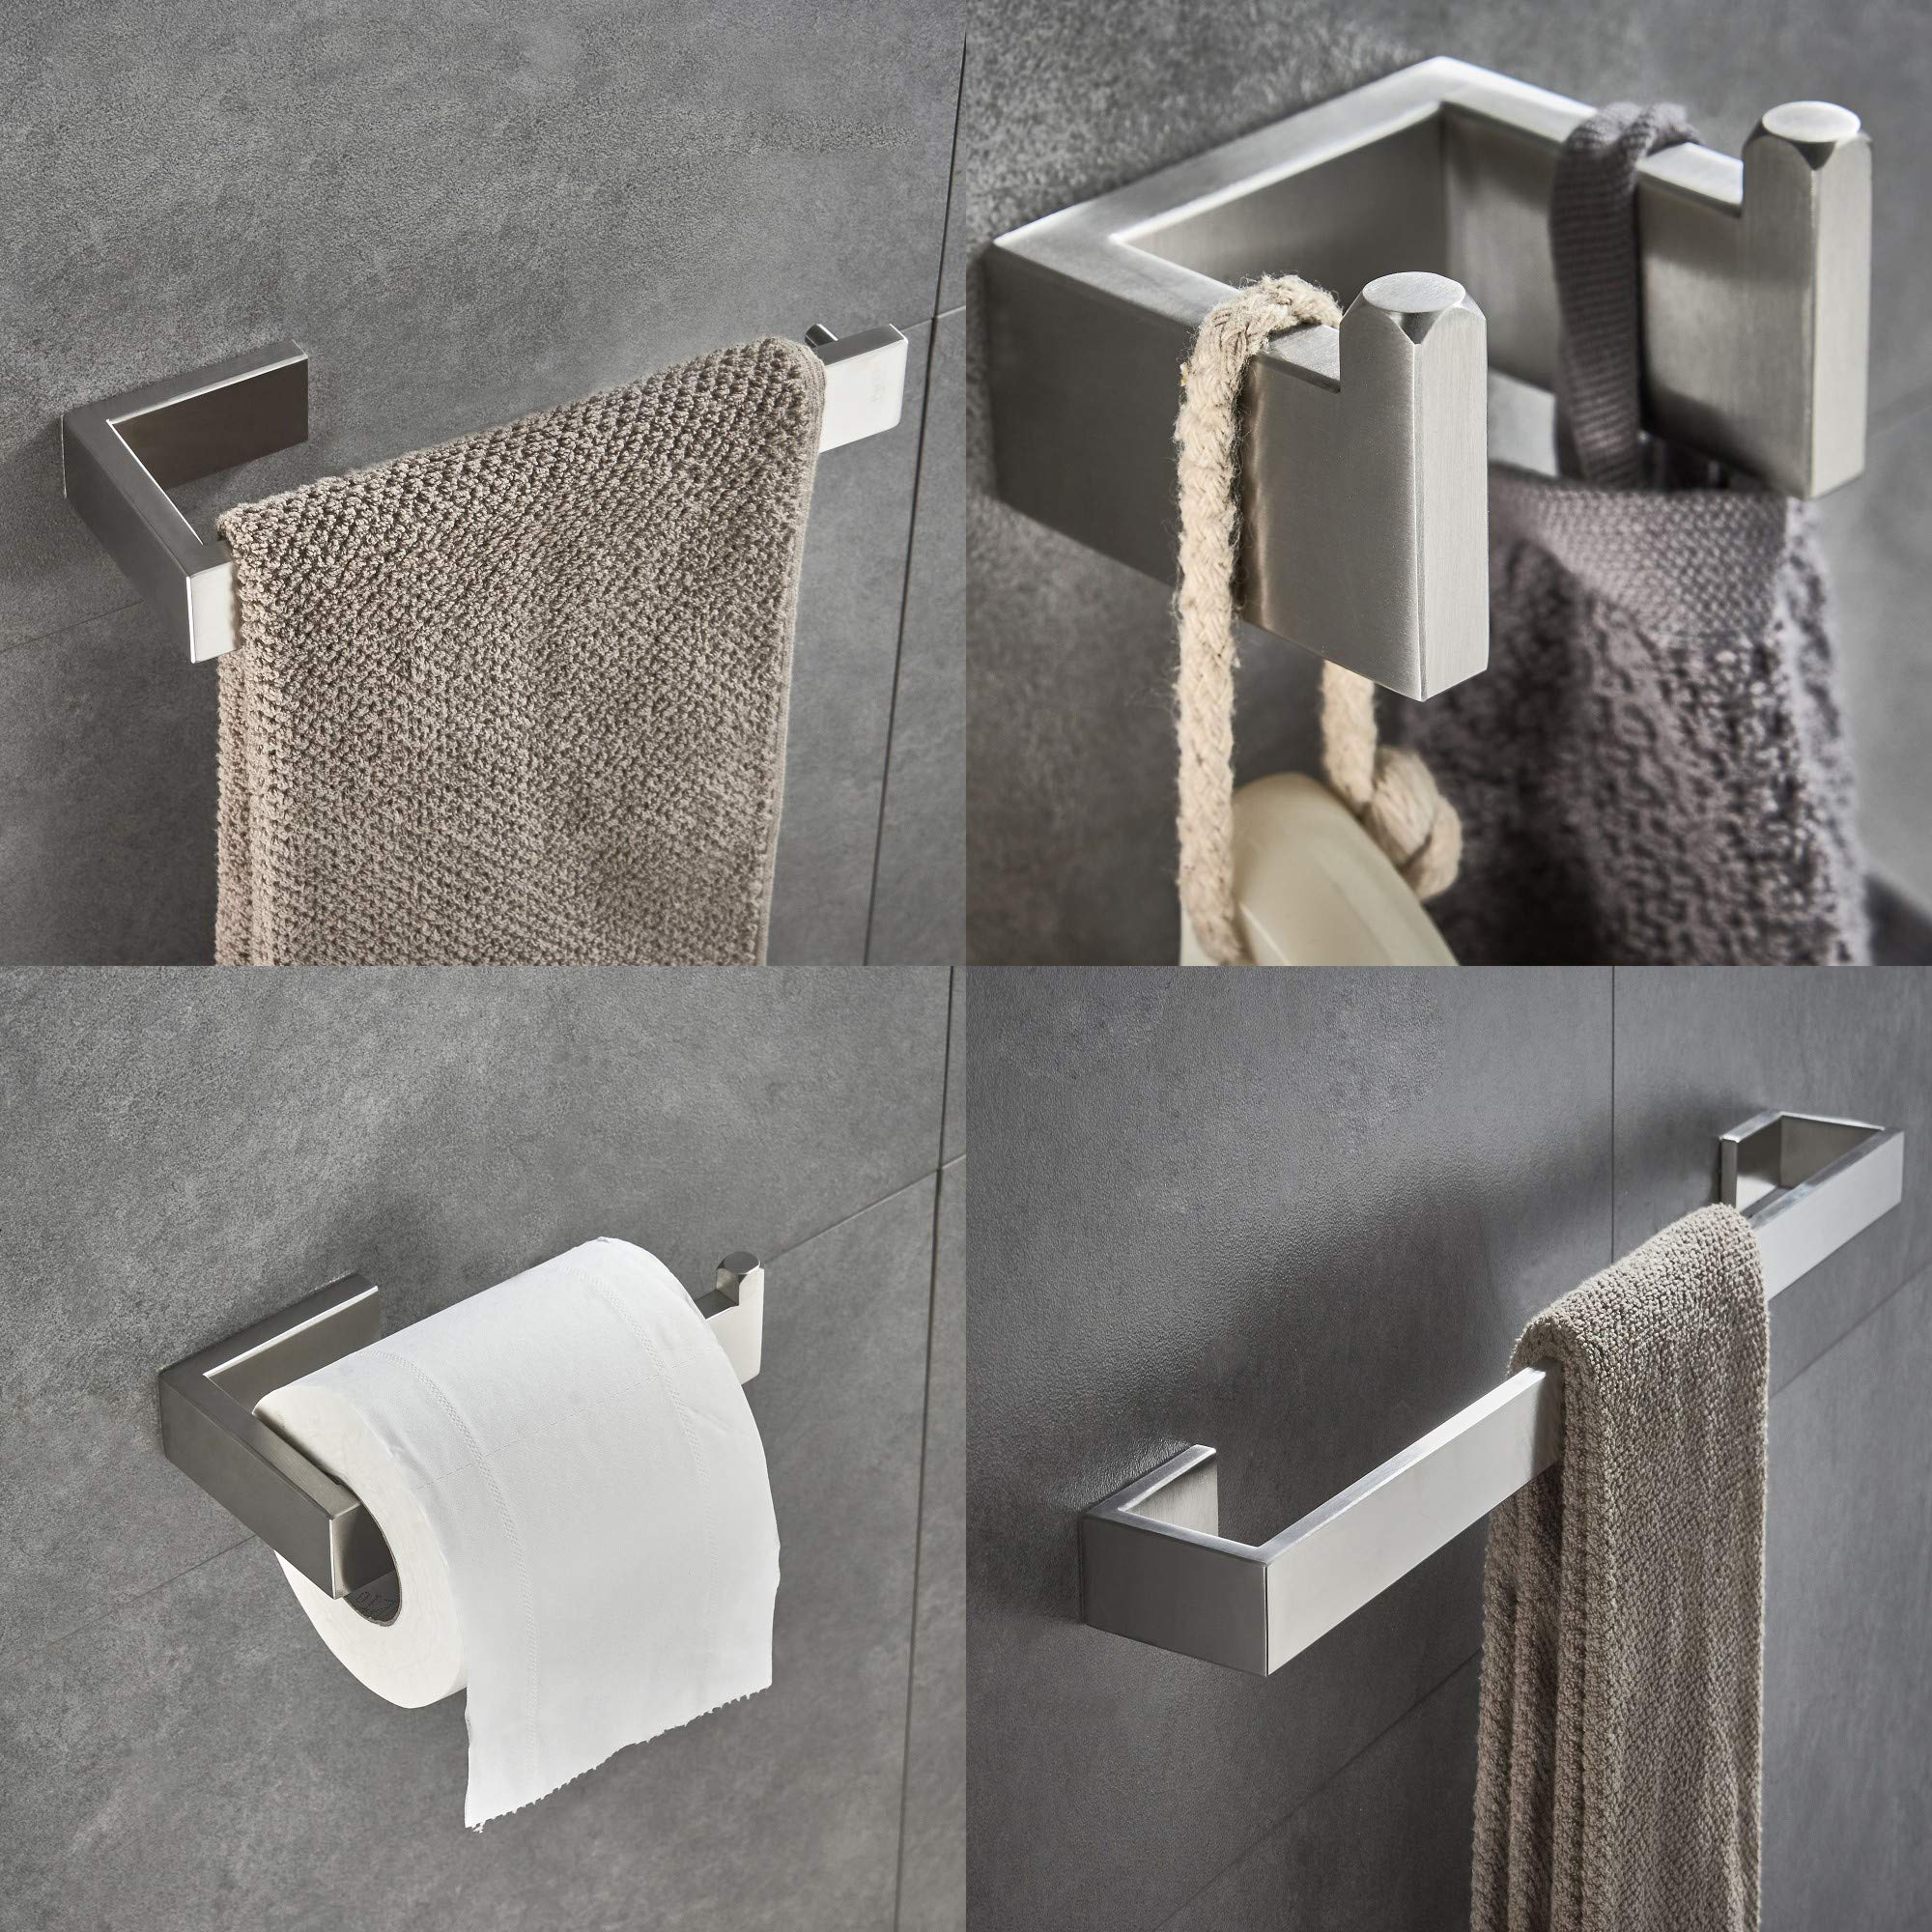 JunSun 4-Piece Bathroom Accessory Set (Towel Bar Toilet Paper Holder Robe Hook Towel Holder) Contemporary Bathroom Hardware Accessories Sets Wall Mounted - Stainless Steel Brushed Nickel